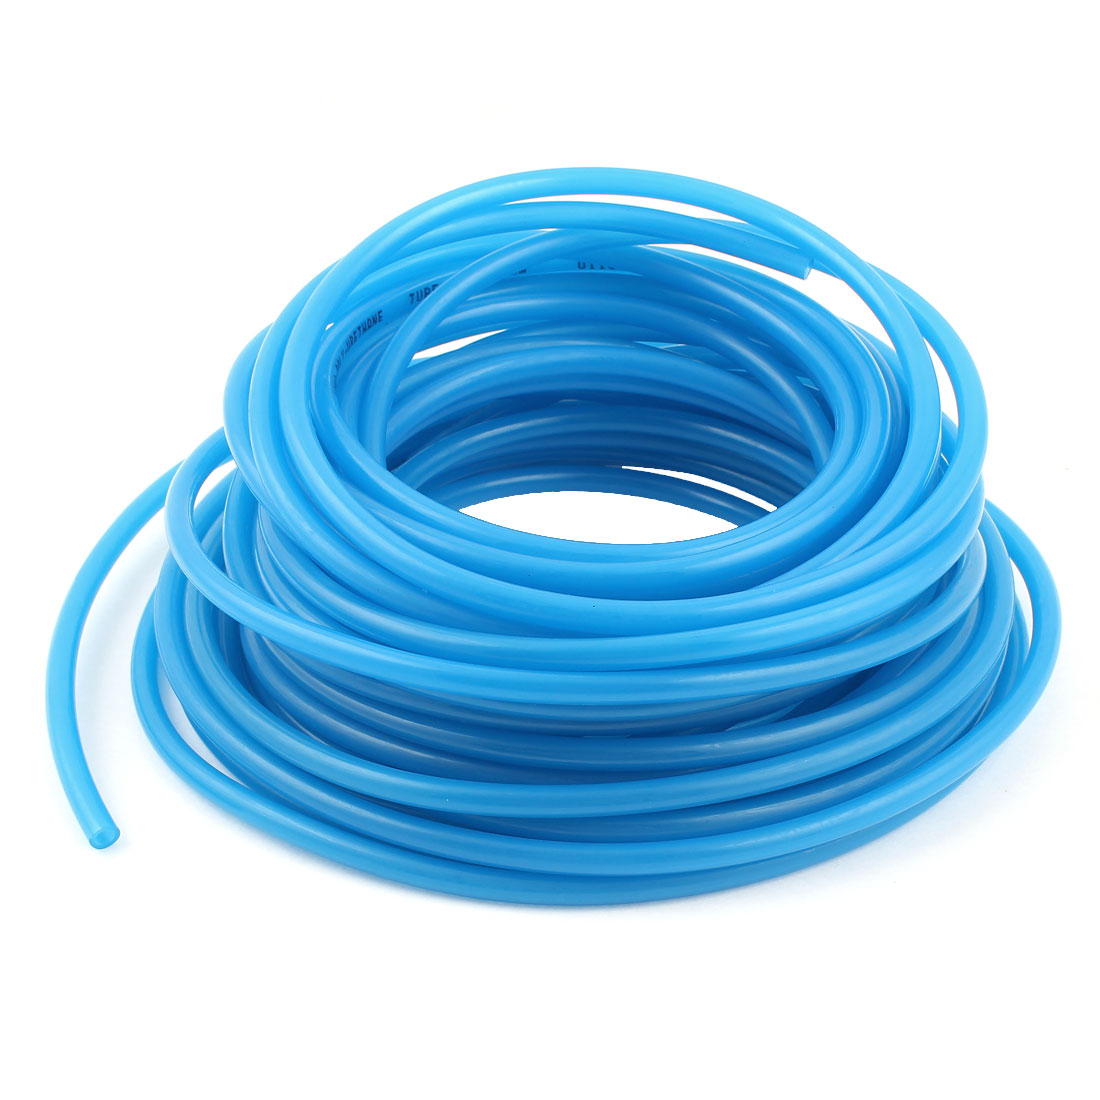 10m 33ft 6mmx4mm Pneumatic Polyurethane PU Hose Tube Pipe Clear Blue